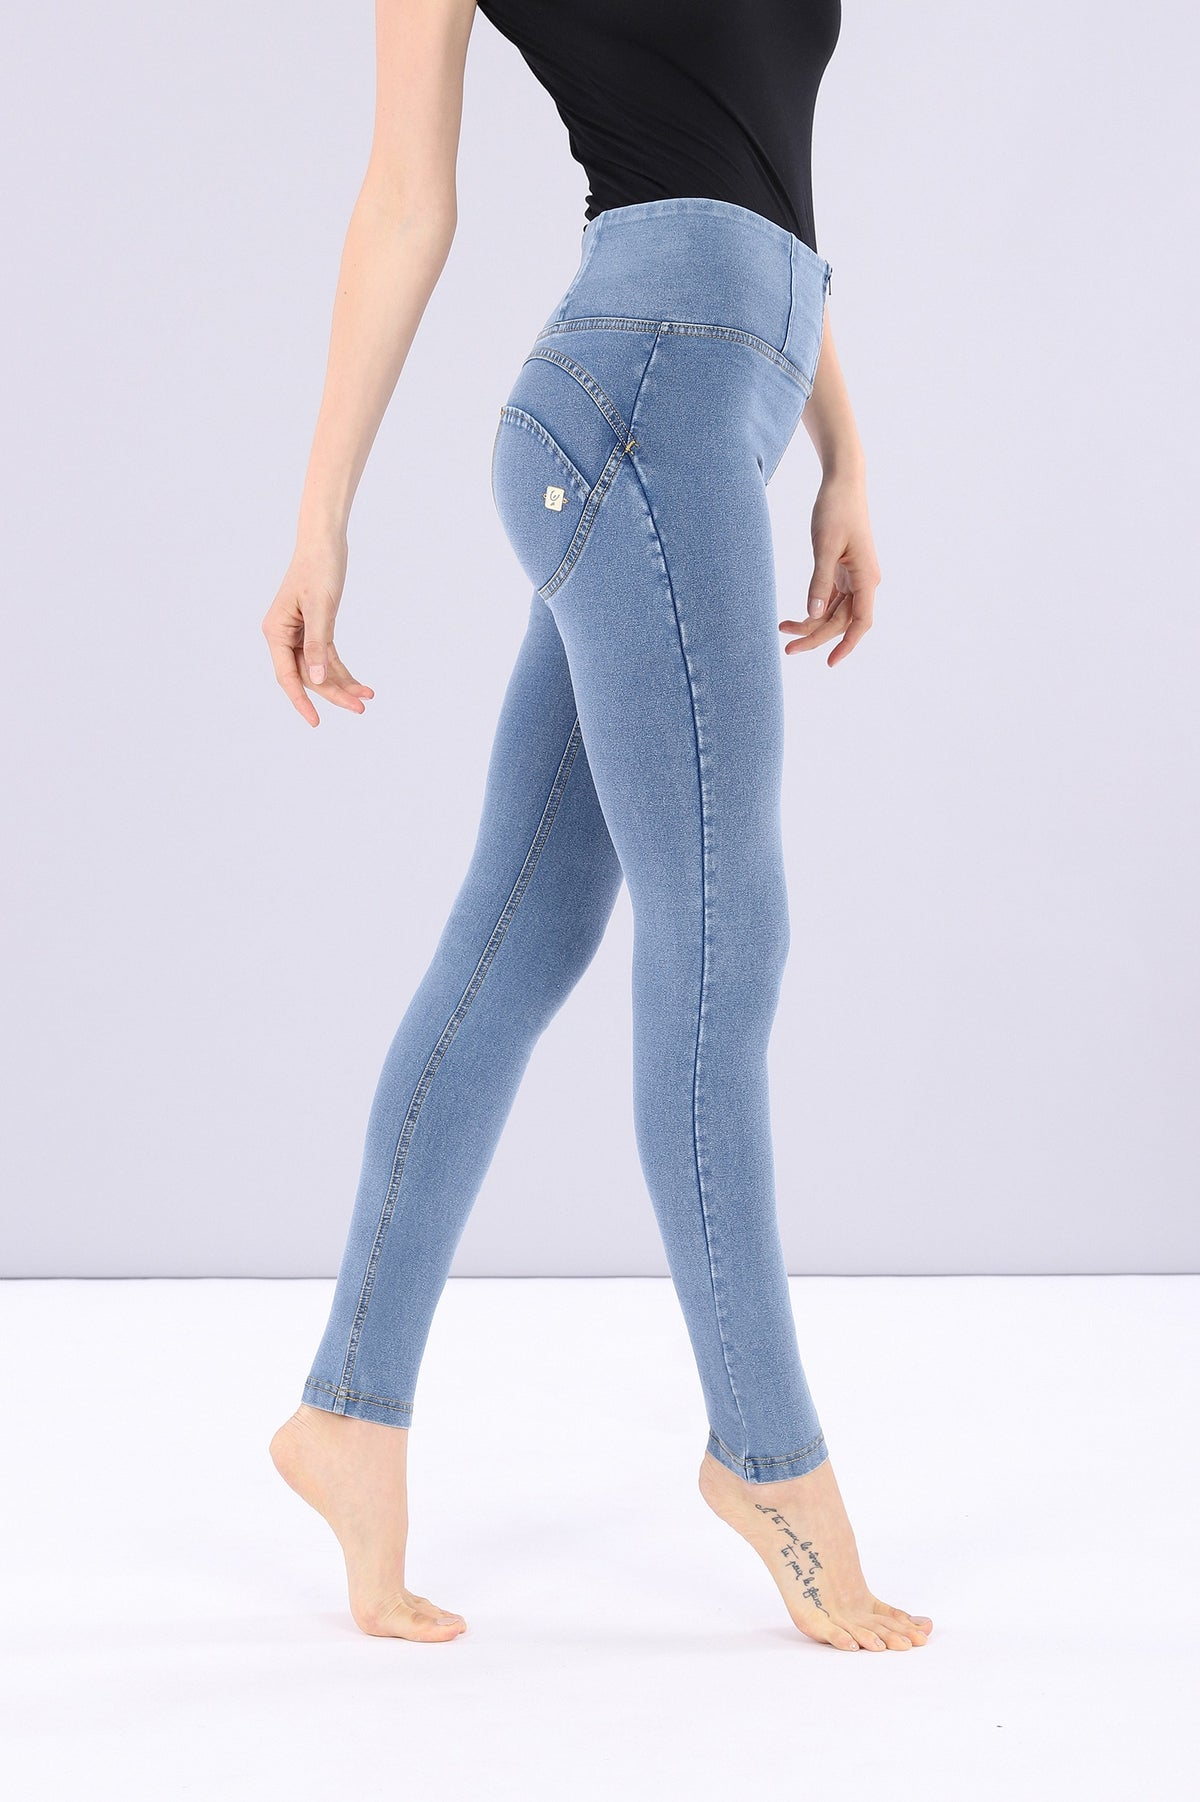 ANKLE LIGHT DENIM HIGH RISE SELF TONE ZIP